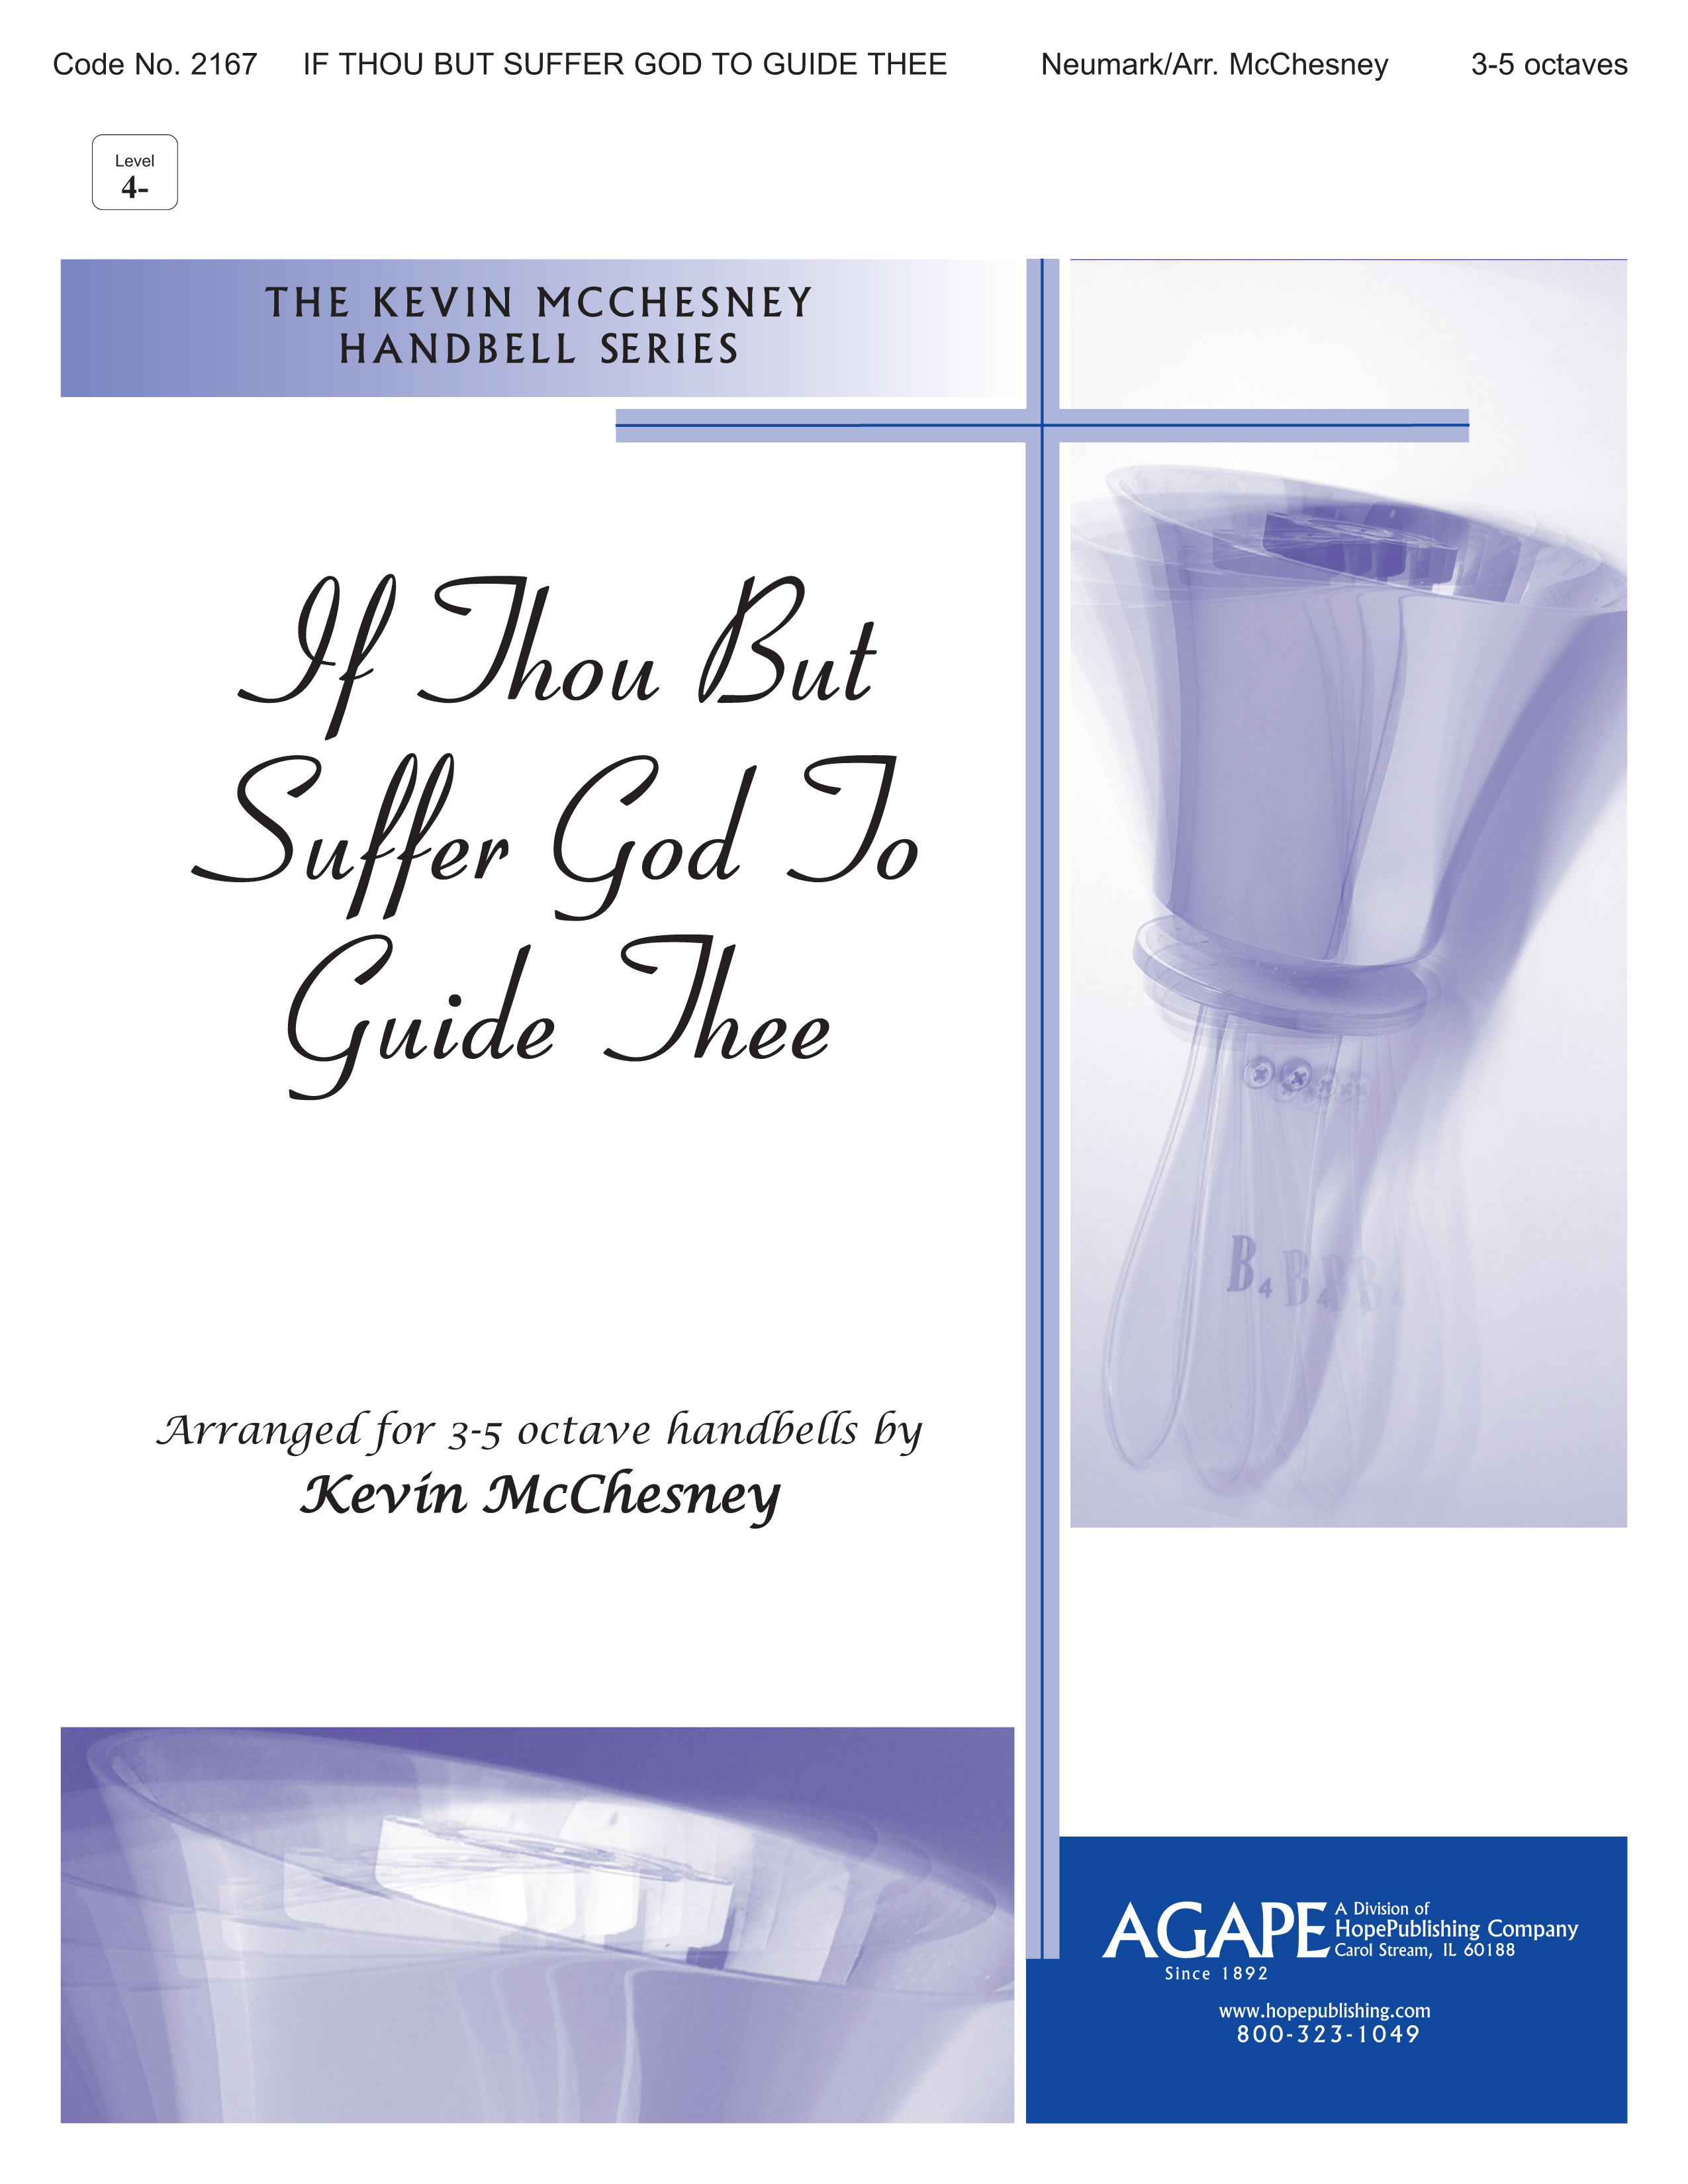 If Thou but Suffer God to Guide Thee - 3-5 Octave Cover Image